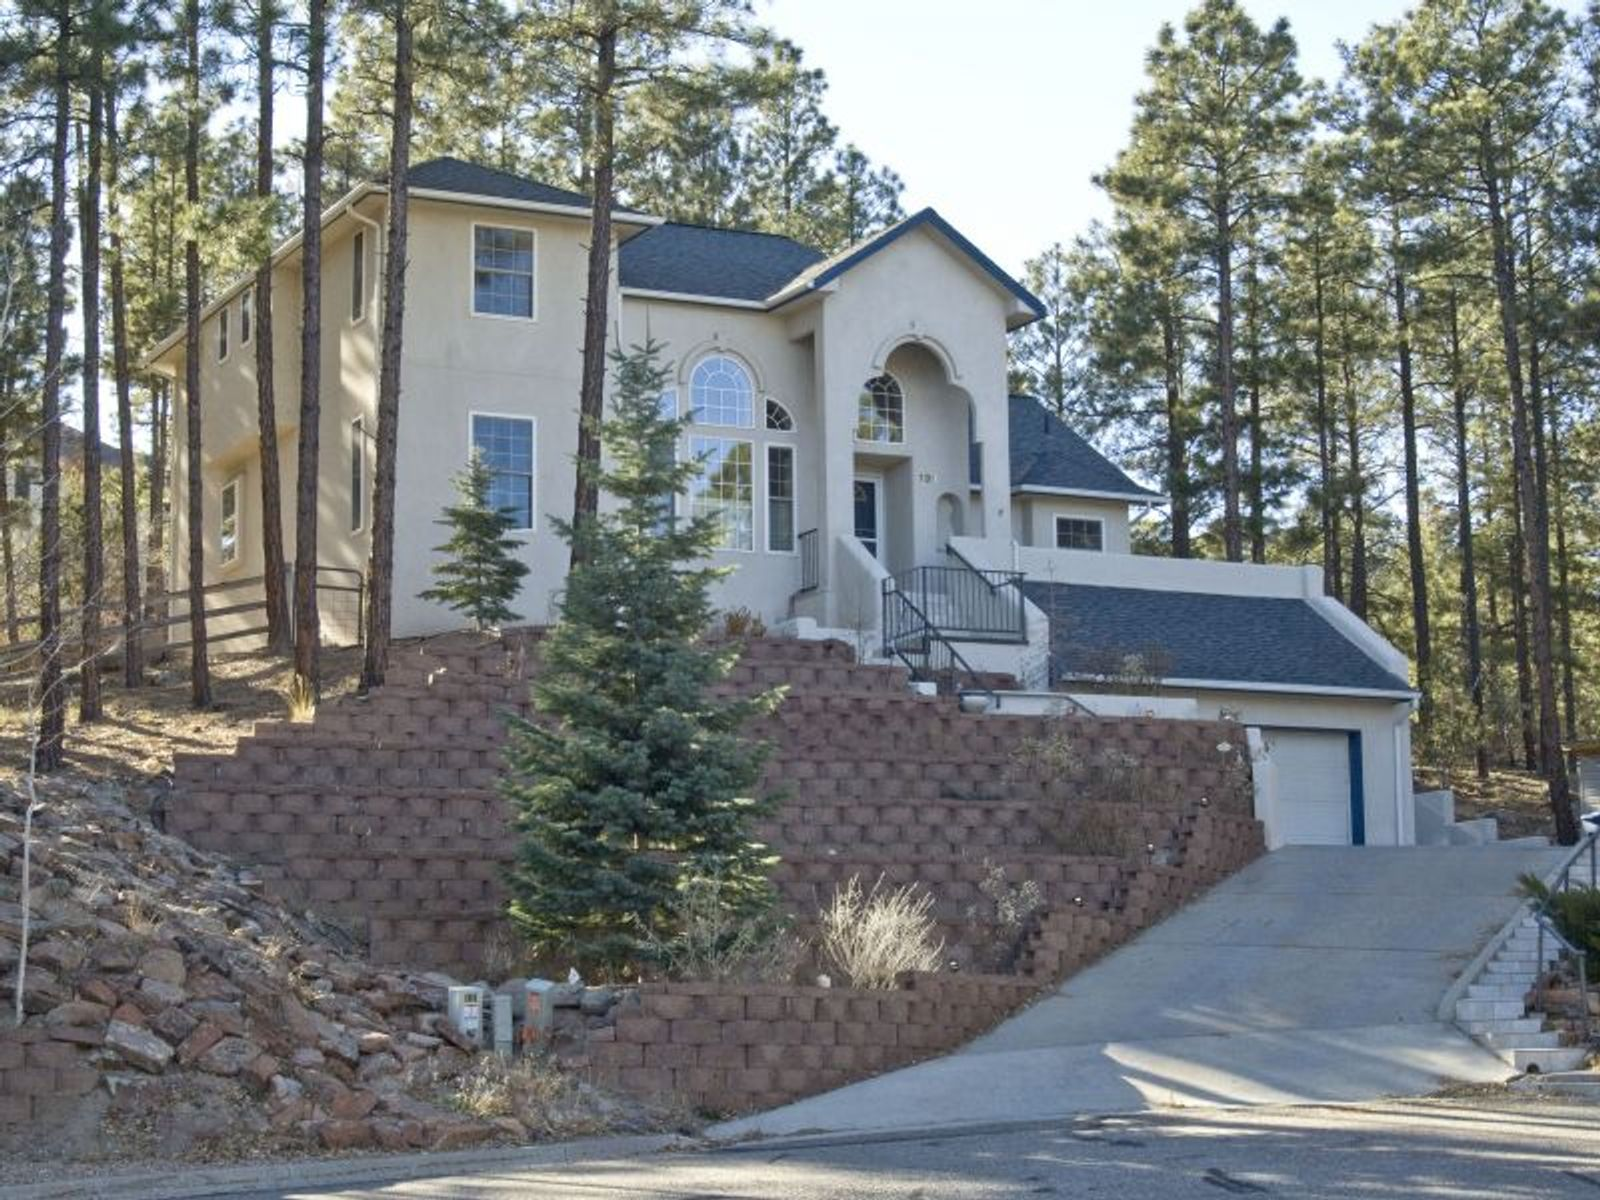 191 Maple Drive, Los Alamos NM Single Family Home - Santa Fe Real Estate